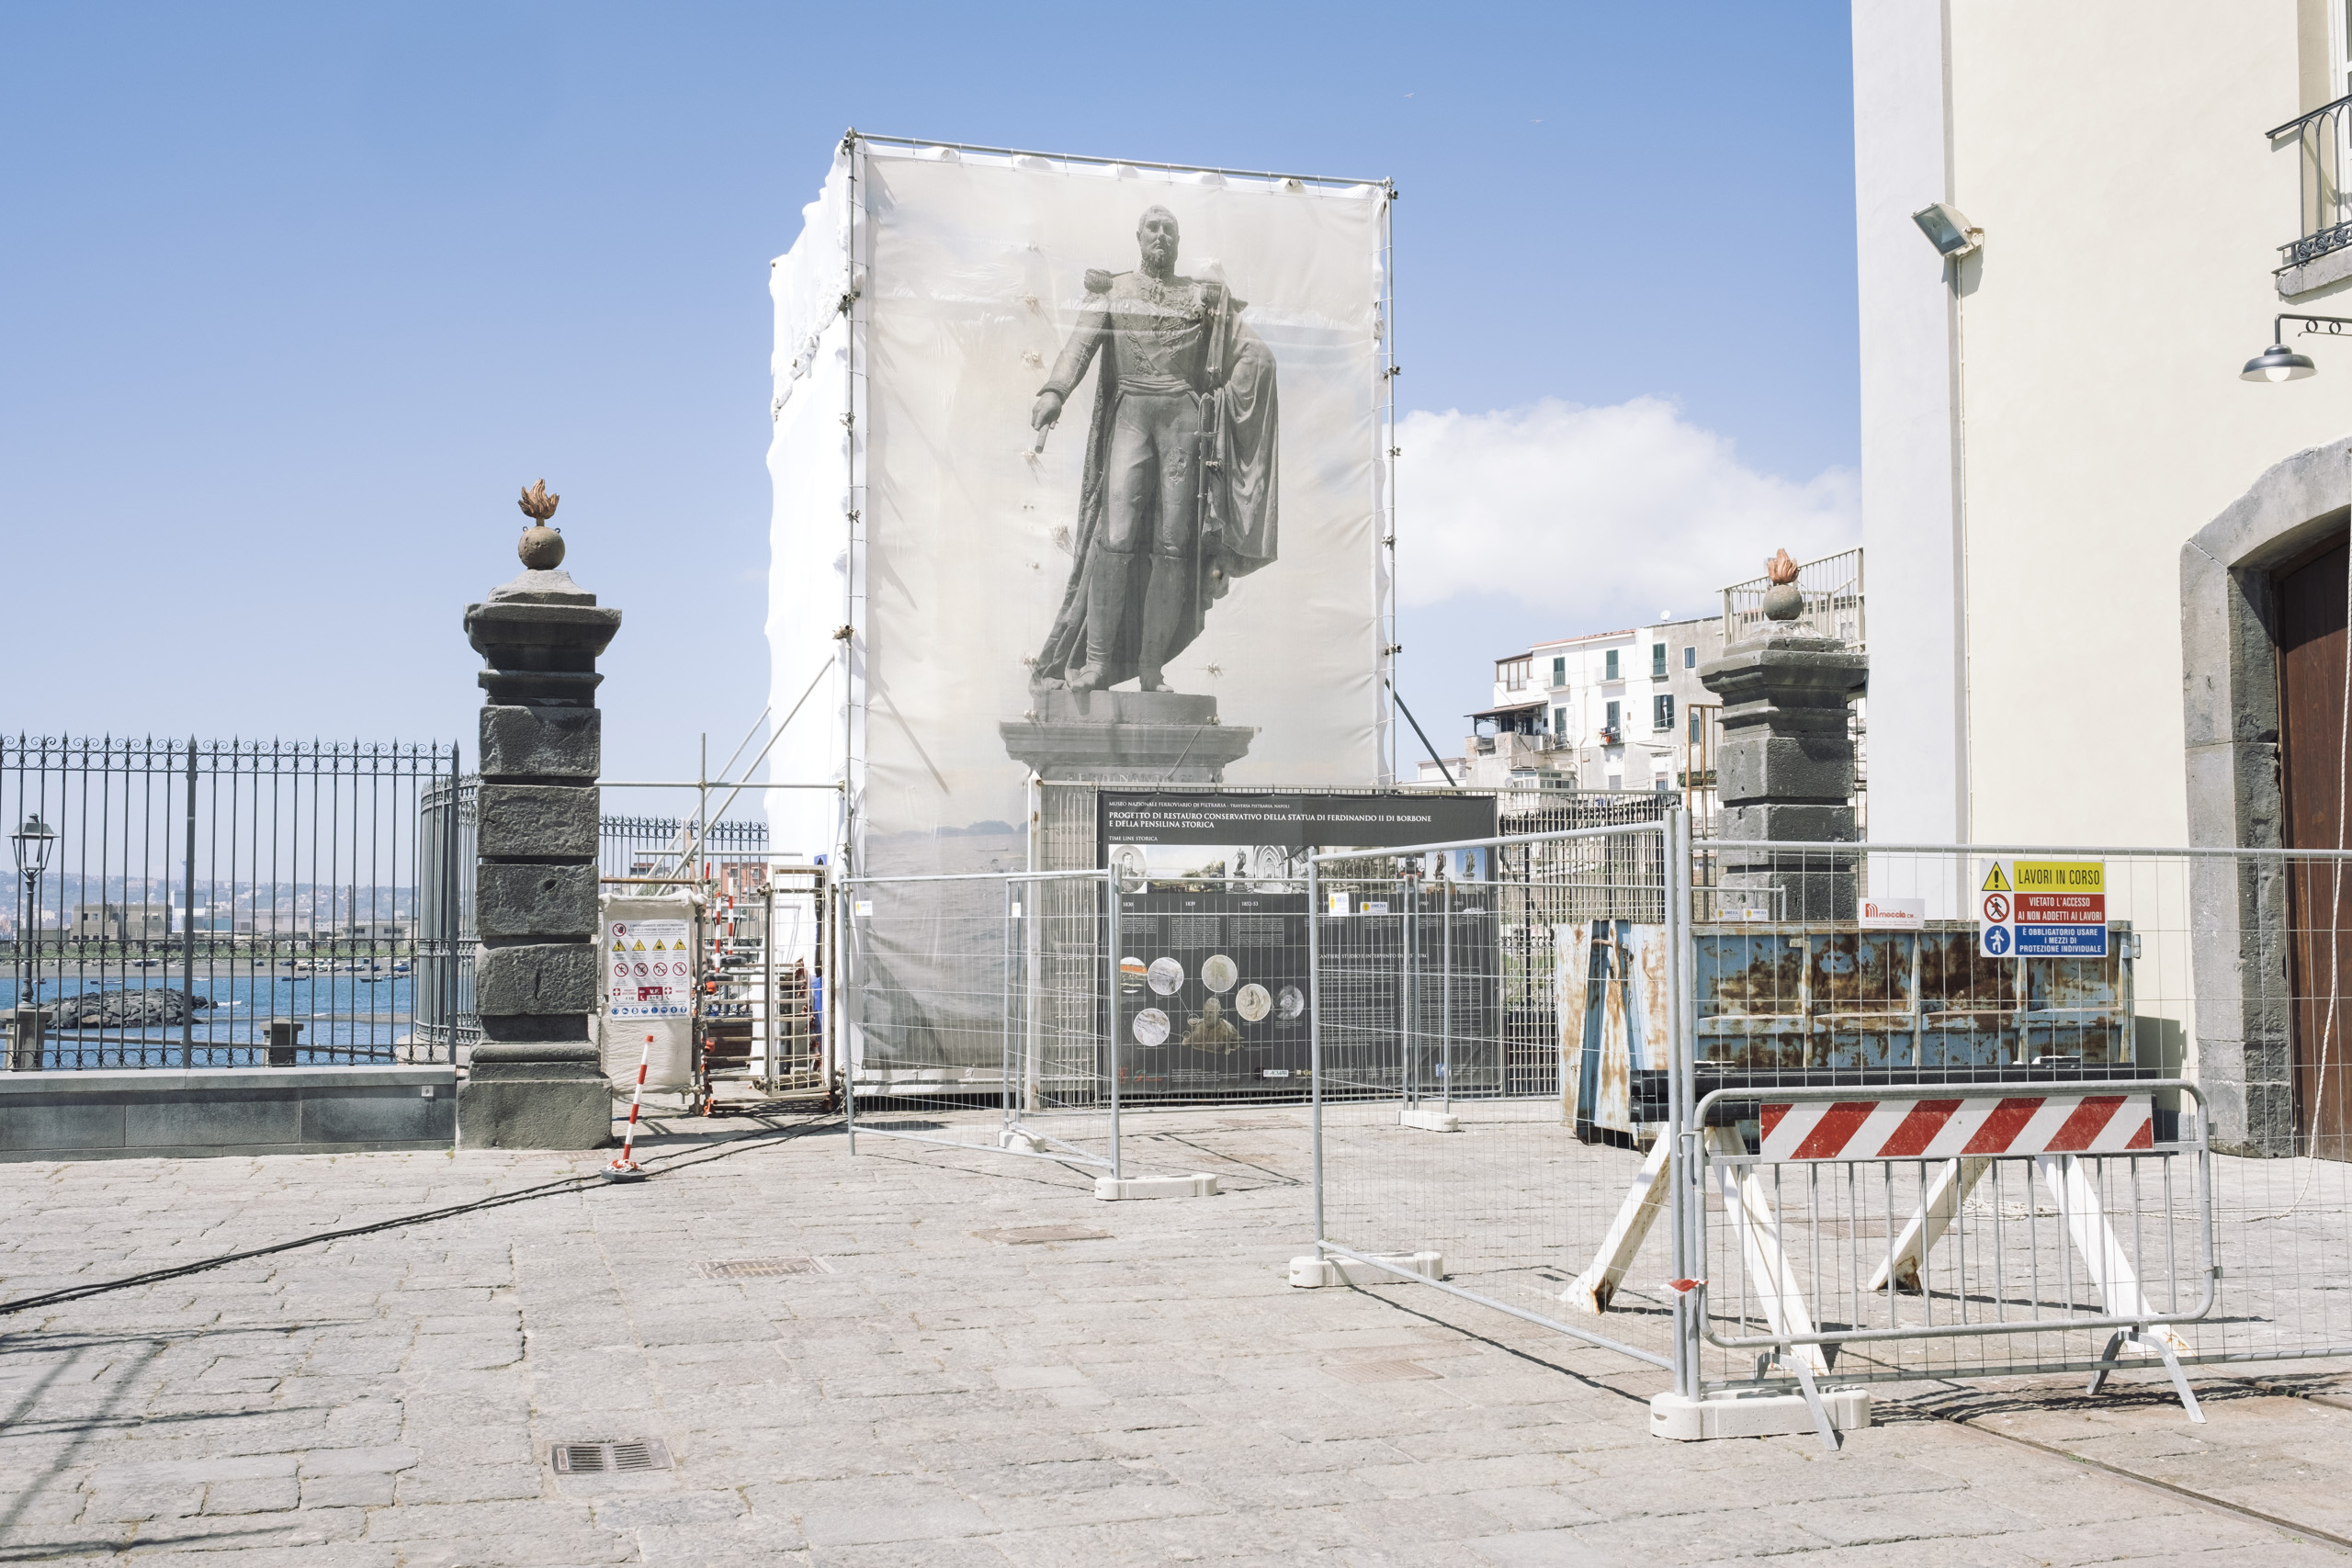 Works are underway to restore the statue of Ferdinando II of Two Sicilies at the Railway Museum of Pietrarsa, April, 2016. Pietrarsa was an active factory for locomotive and ammunition production until the unification of Italy, when production steadily decreased and eventually brought the factory to a closure.